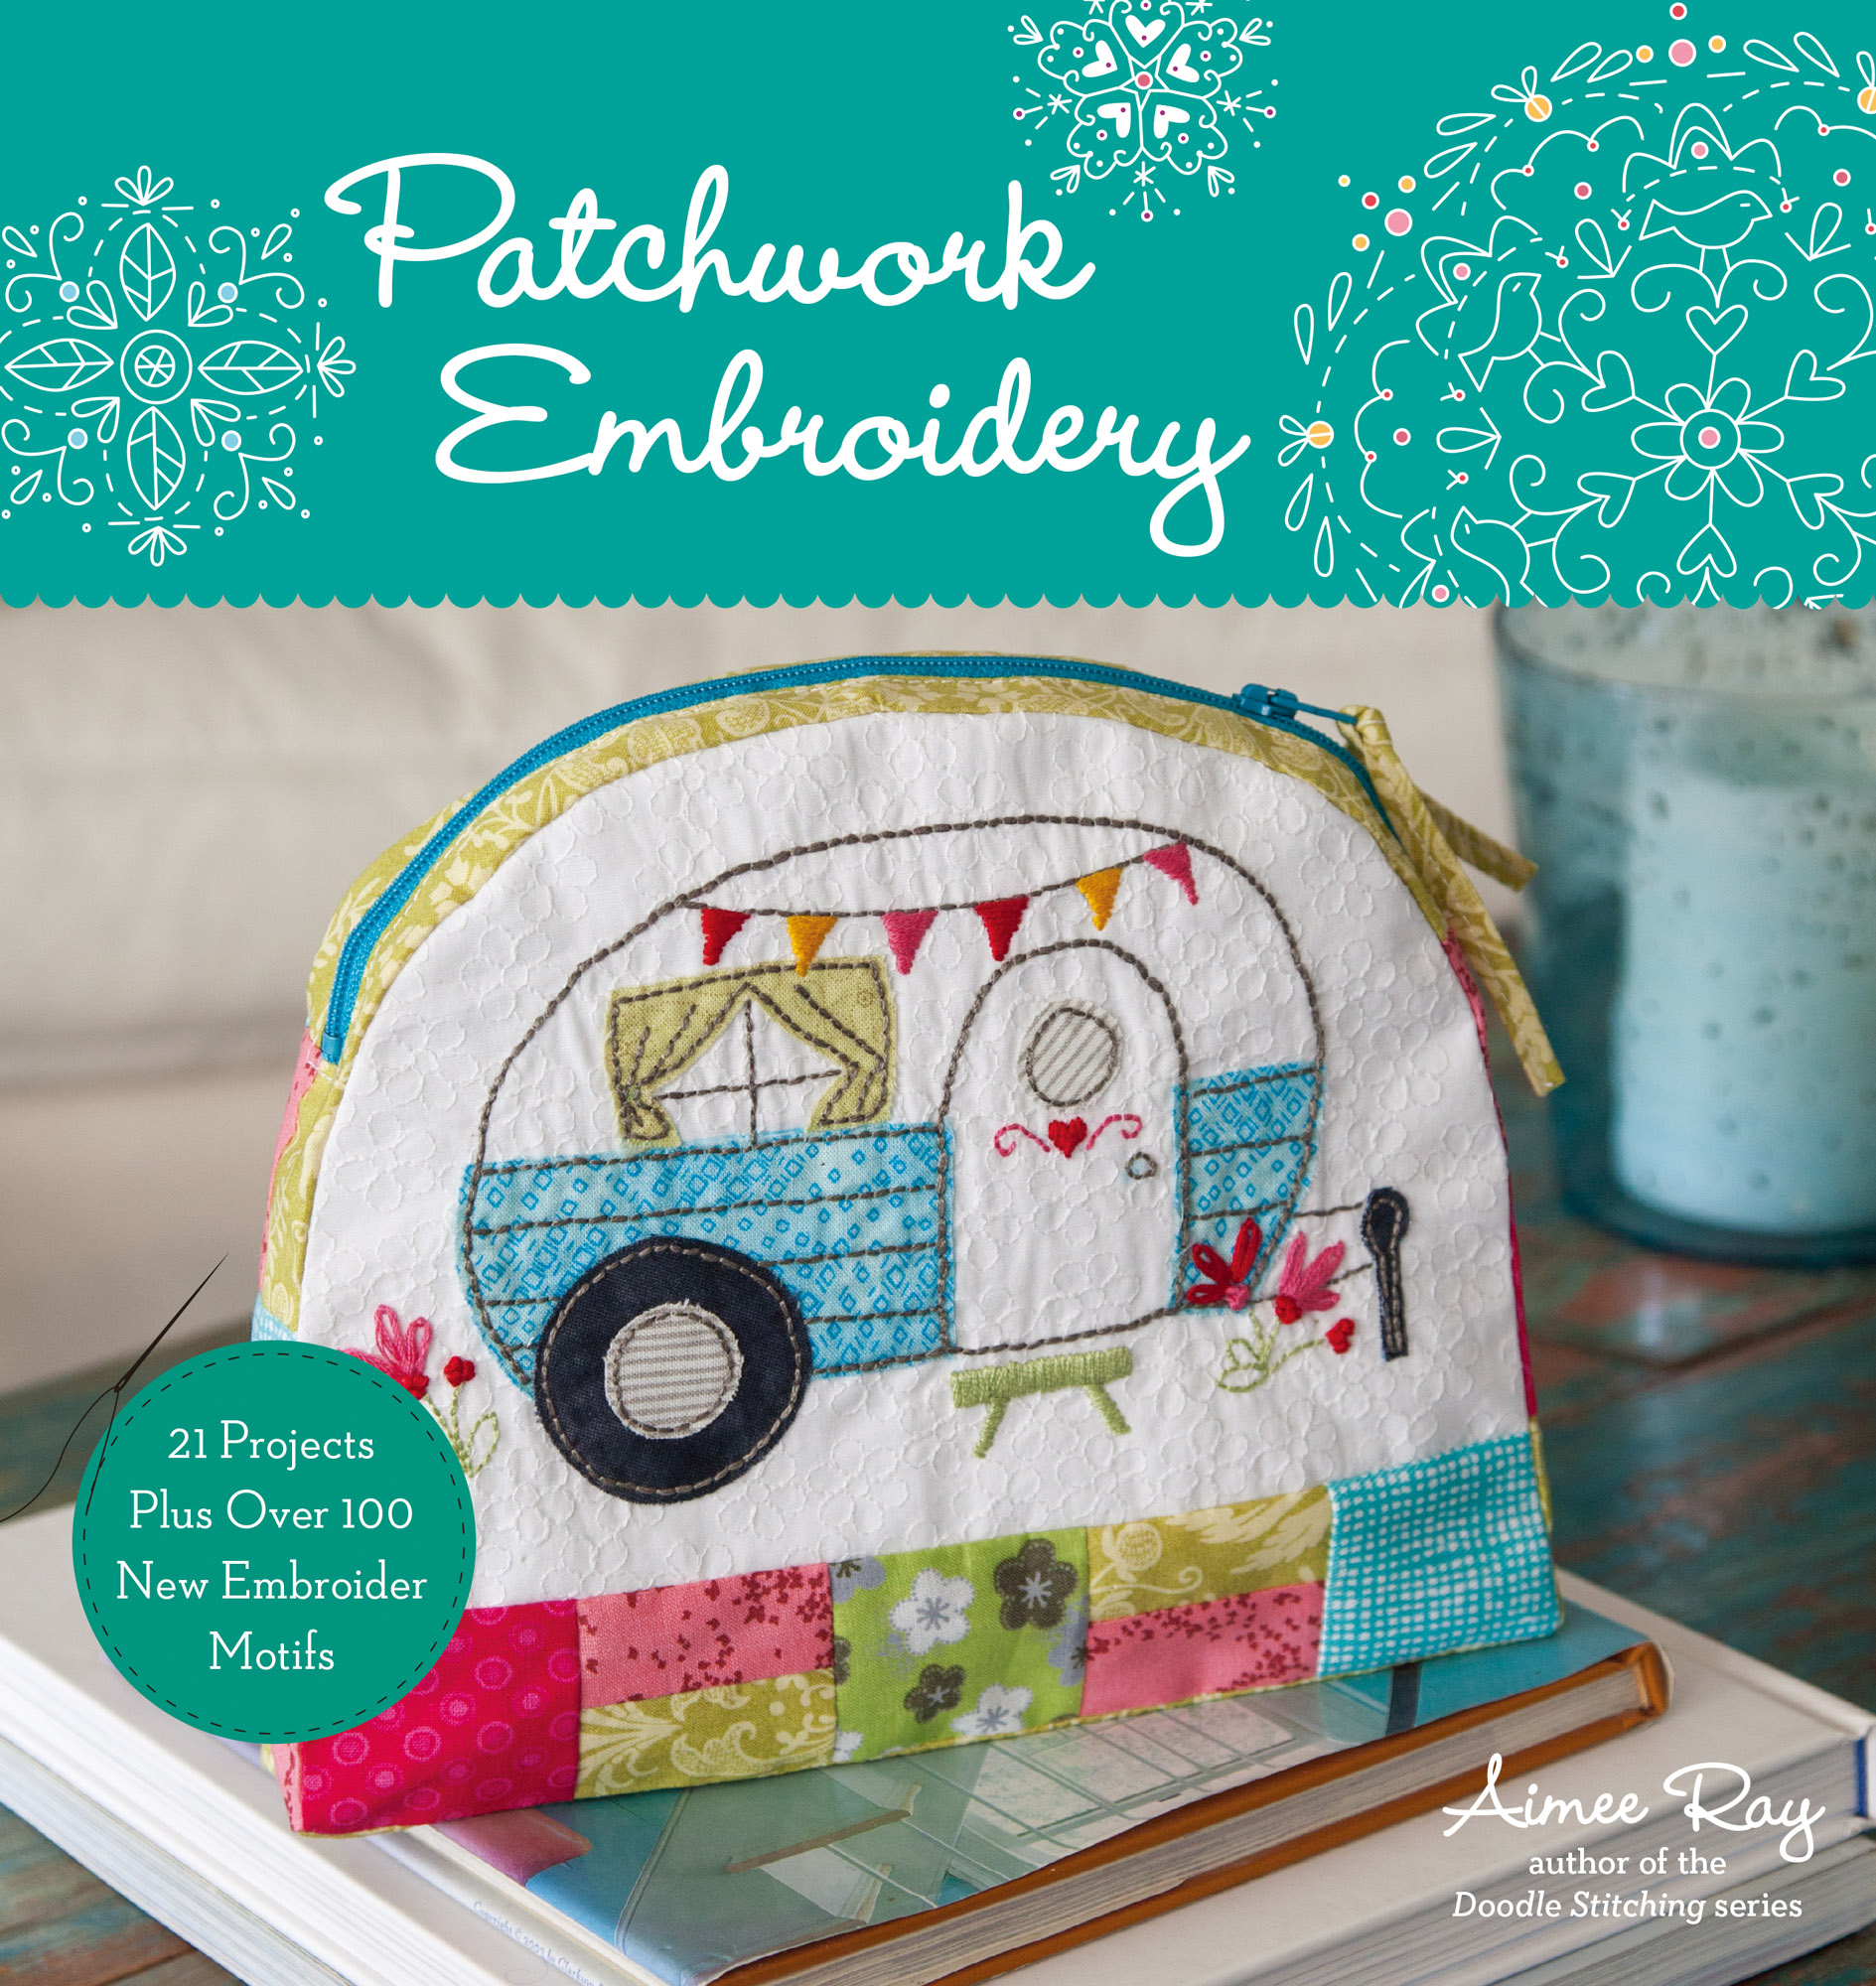 Patchwork Embroidery